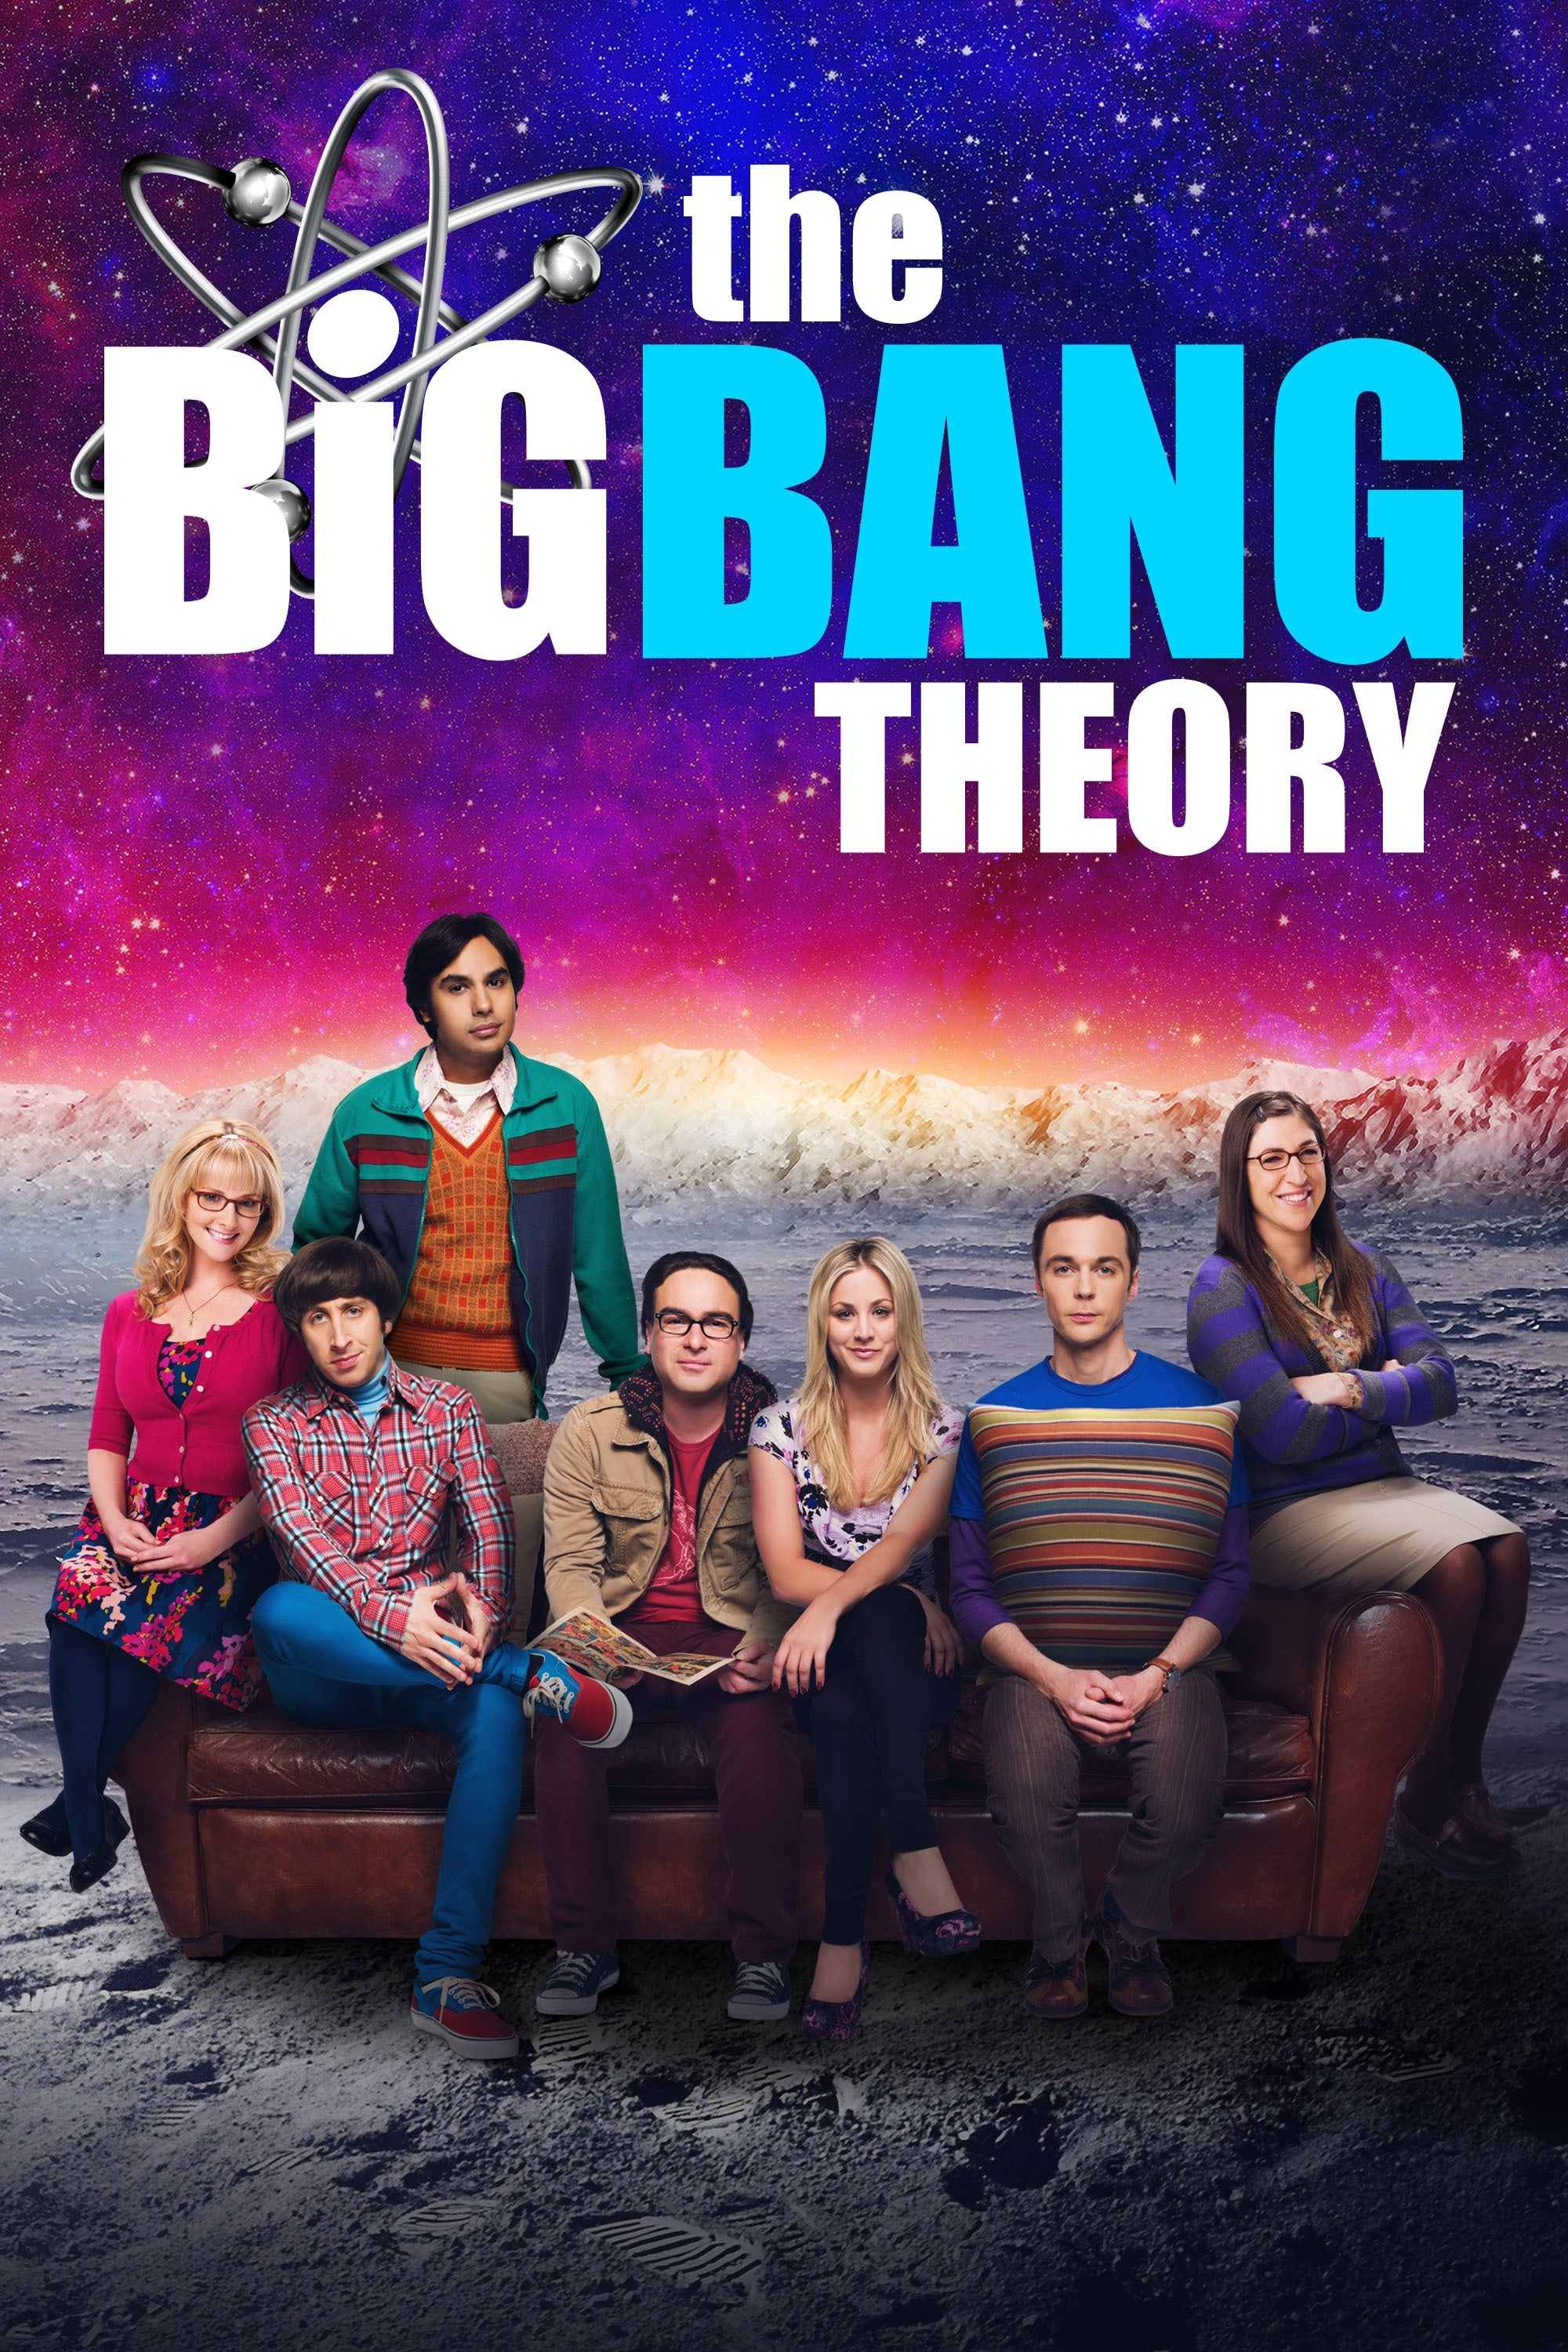 image for The Big Bang Theory